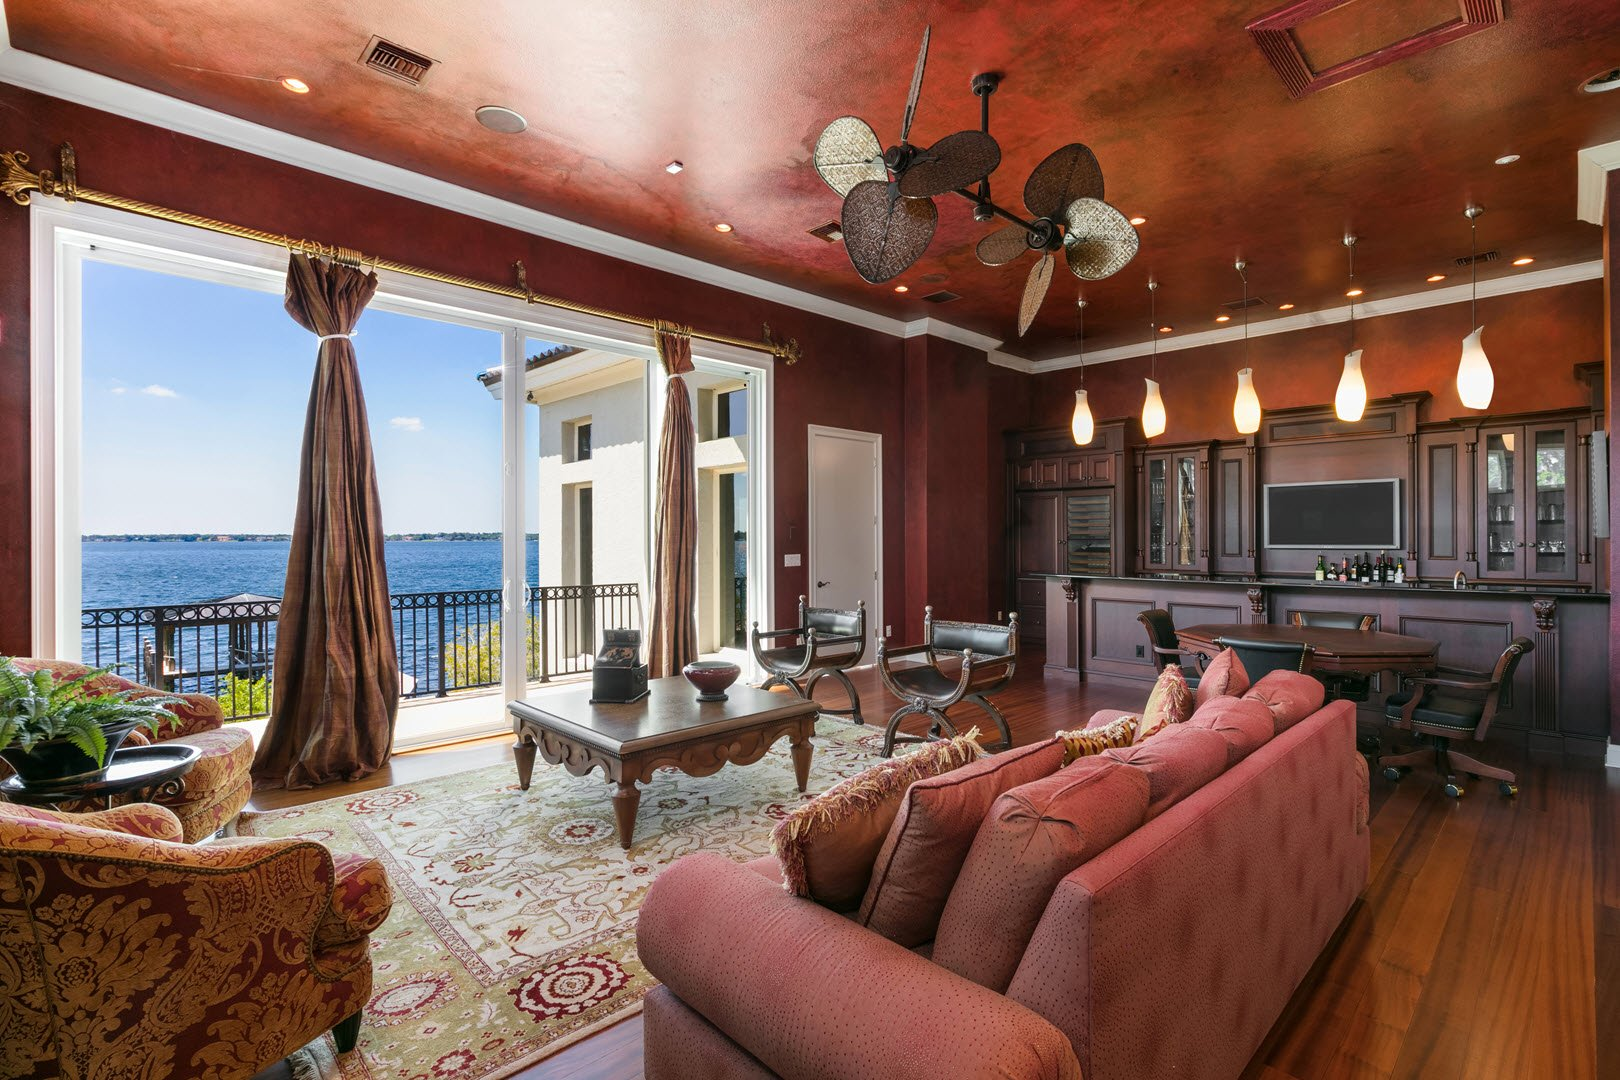 Inside Shaquille ONeal Gradious Mansion in Florida For Sale - Waterfront views